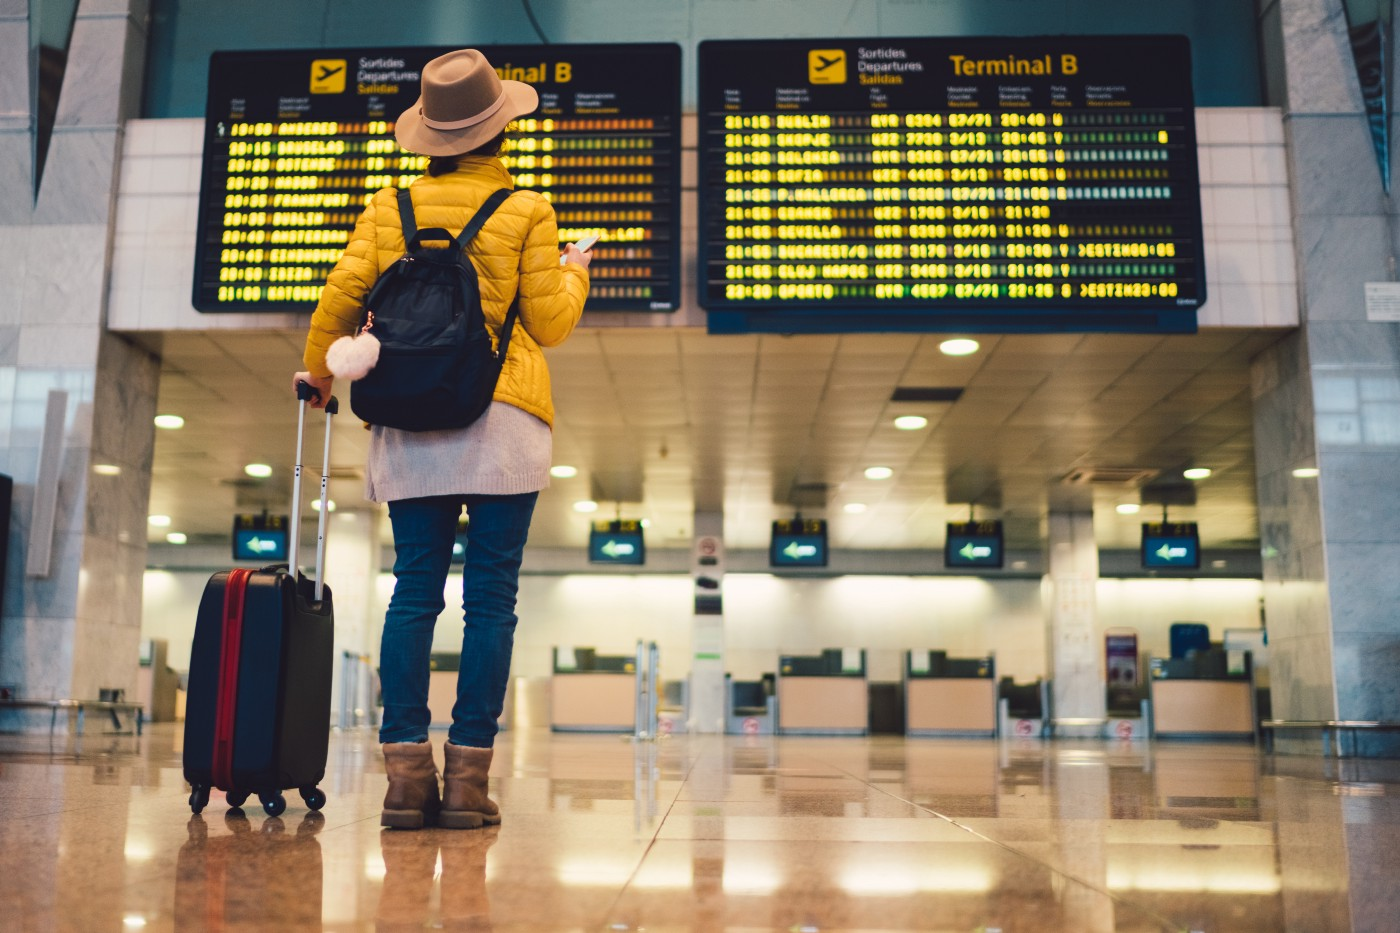 A traveler with a backpack and a rolling suitcase looks at arrivals boards at the airport.